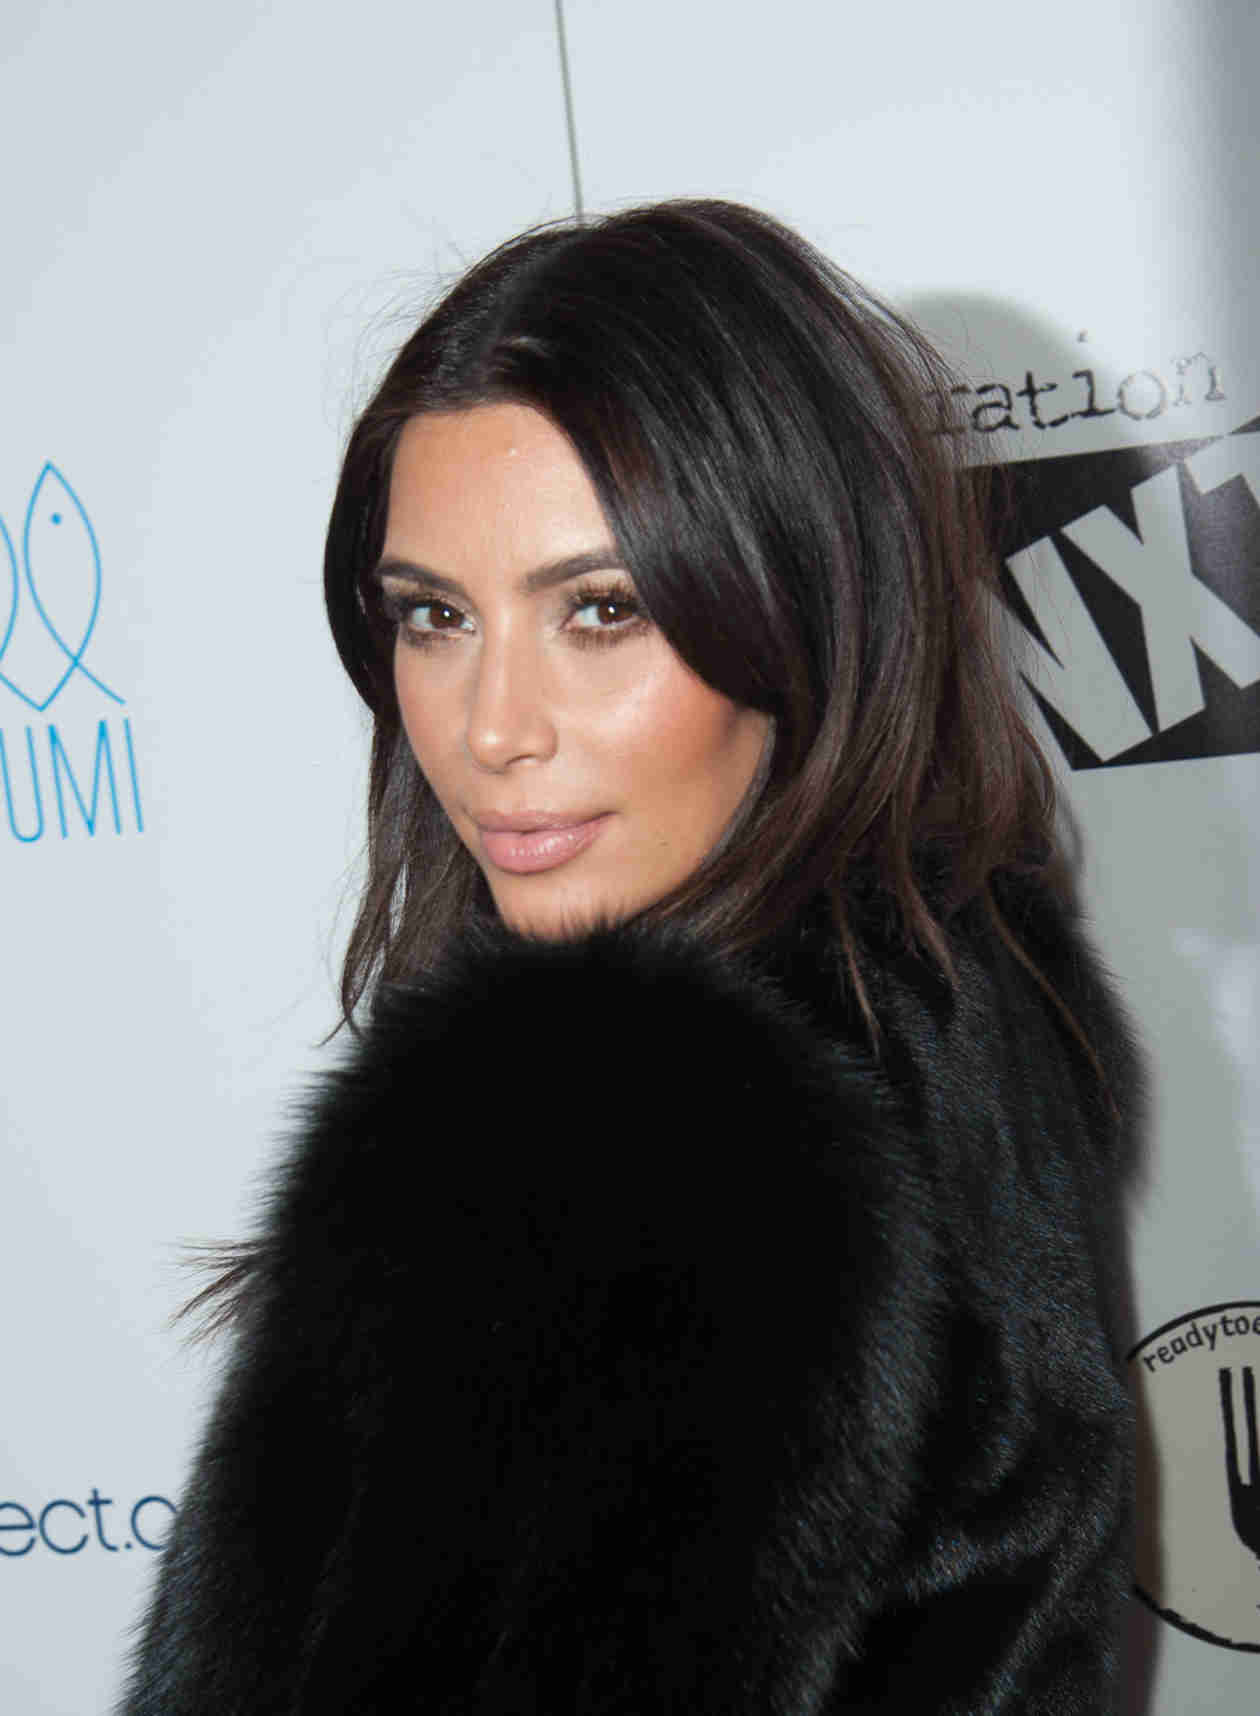 Is Kim Kardashian Planning to Leave Keeping Up With the Kardashians?